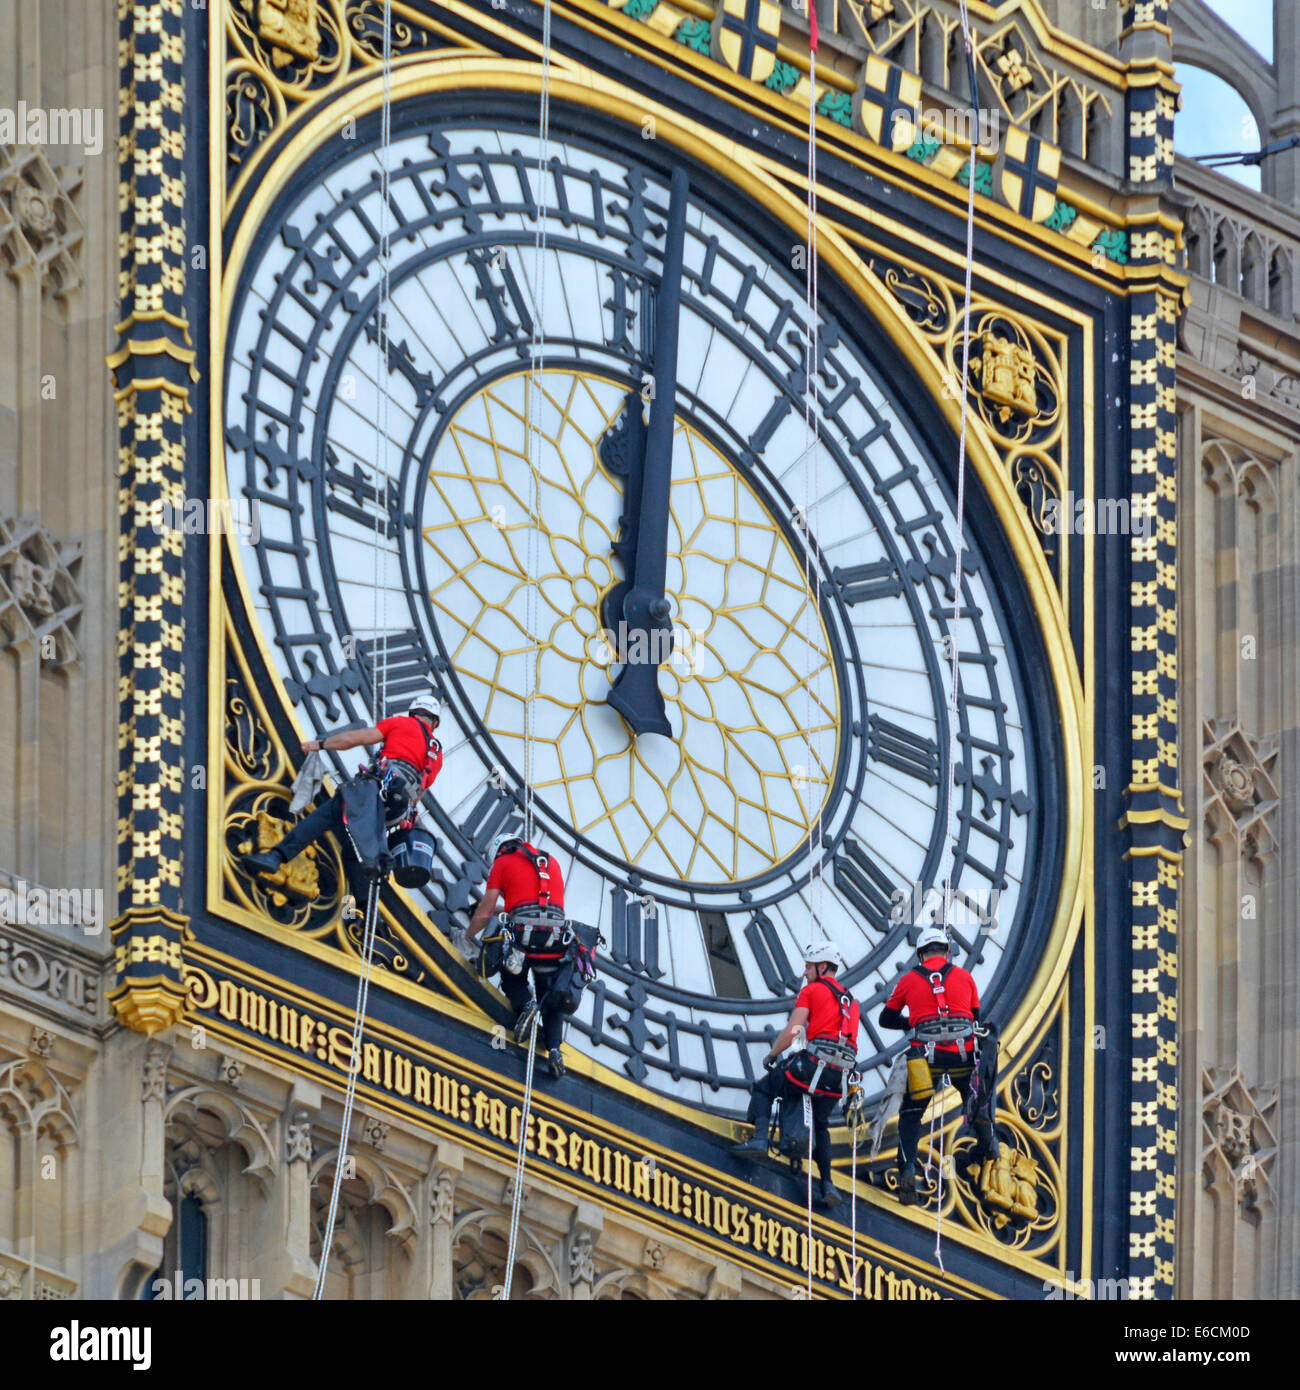 Big Ben Elizabeth Tower clock face being cleaned with hands set to wrong time of 12 noon or midnight - Stock Image